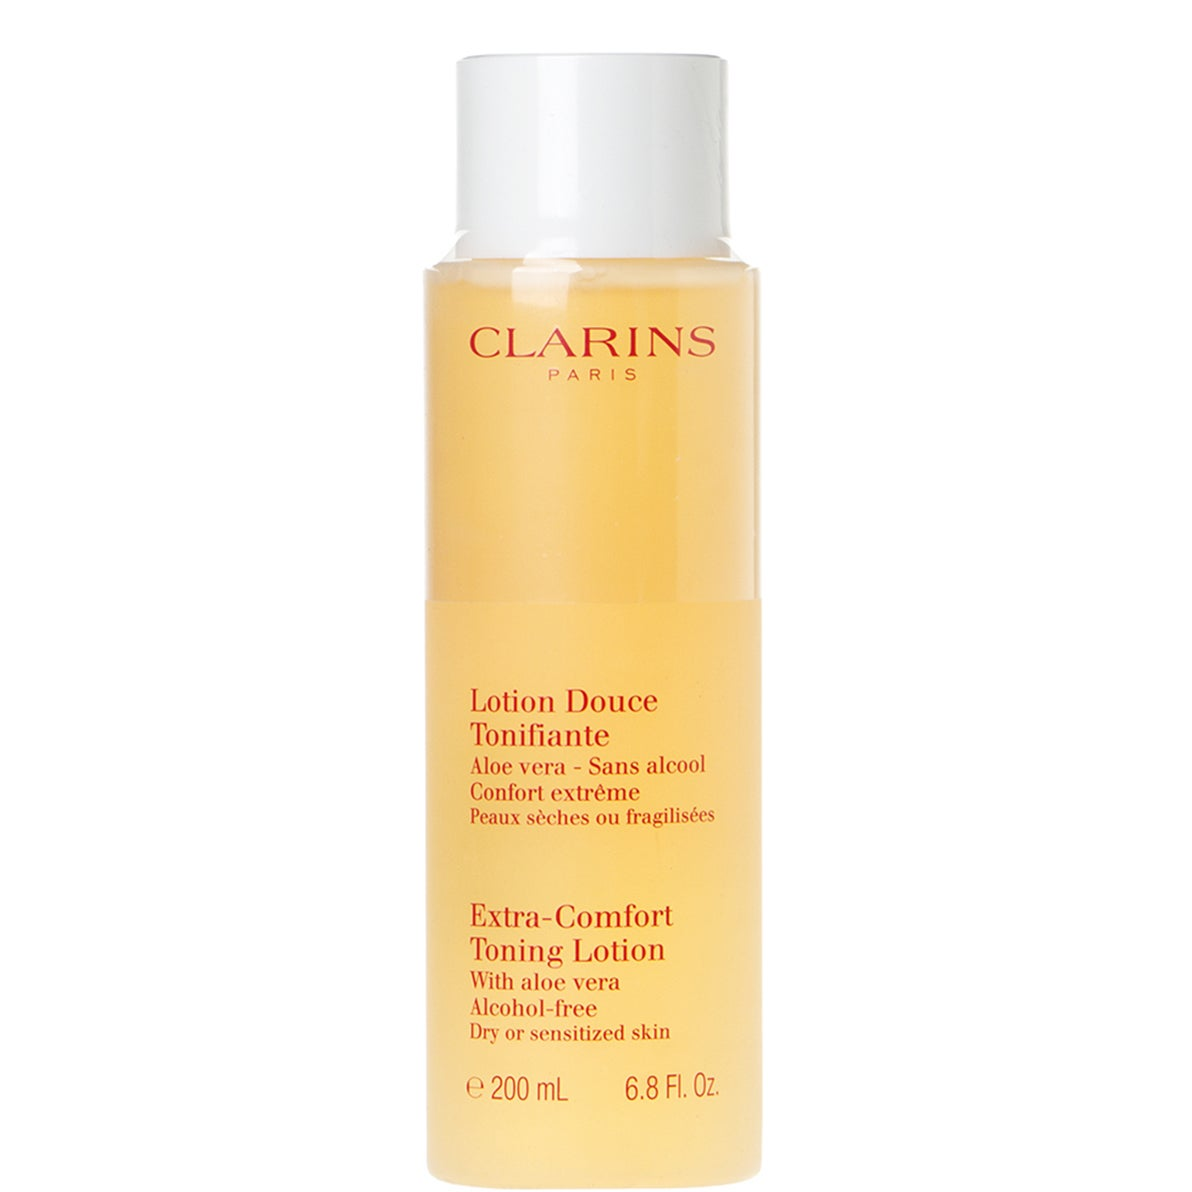 Clarins Extra Comfort Toning Lotion with Aloe Vera 200ml